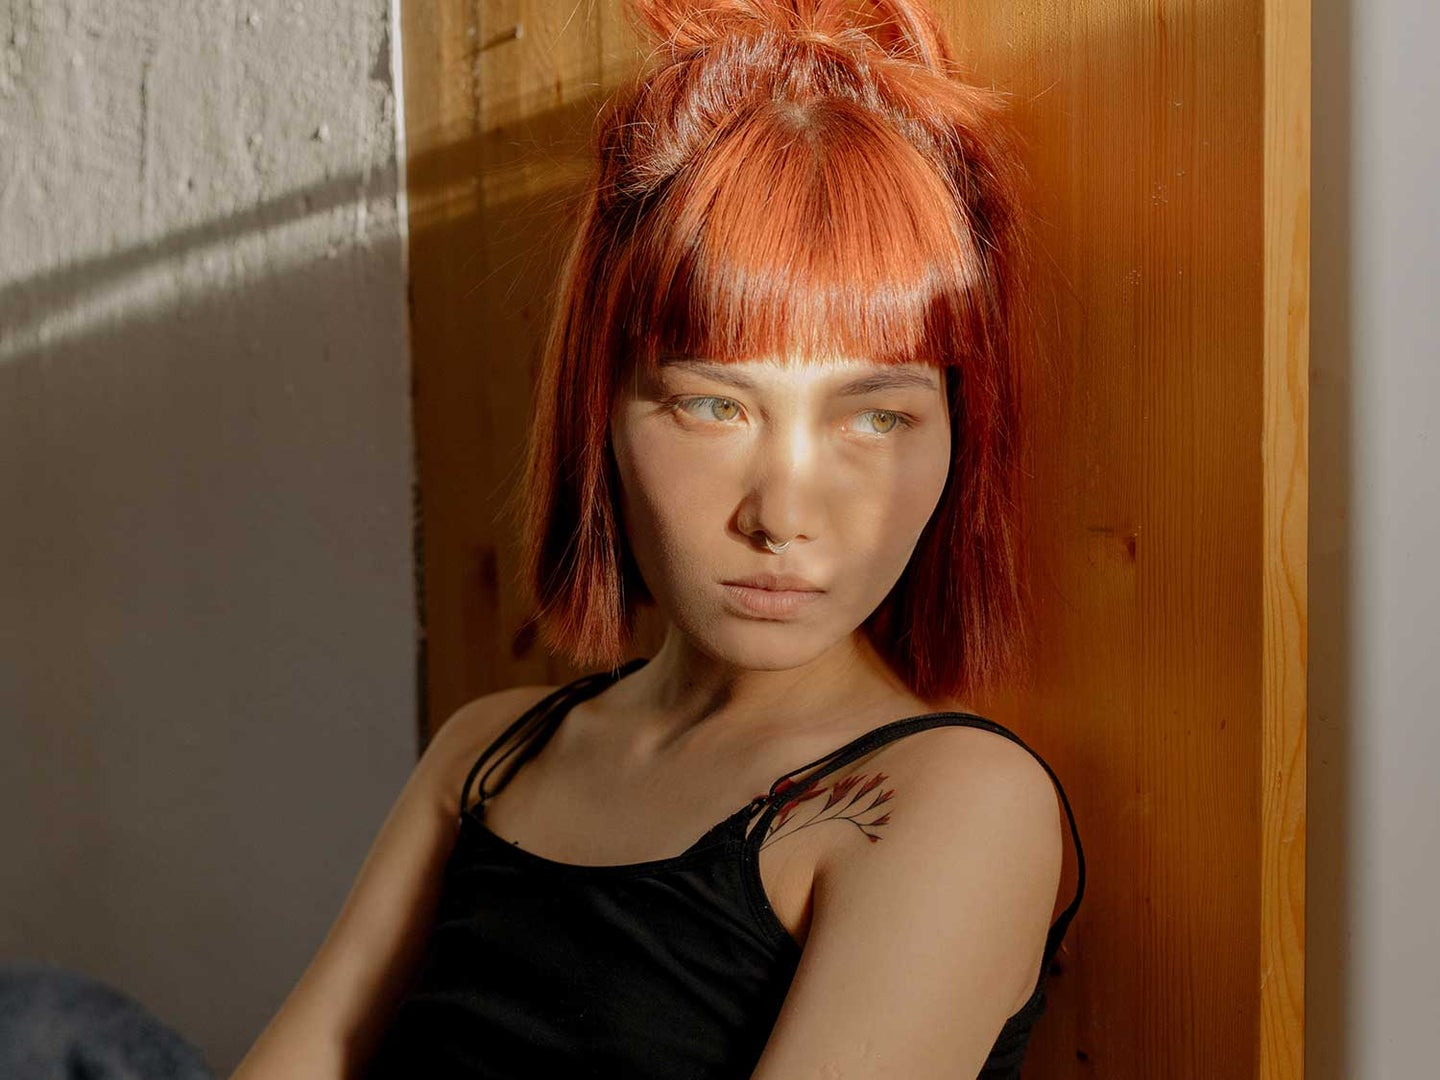 Woman with red dyed hair.